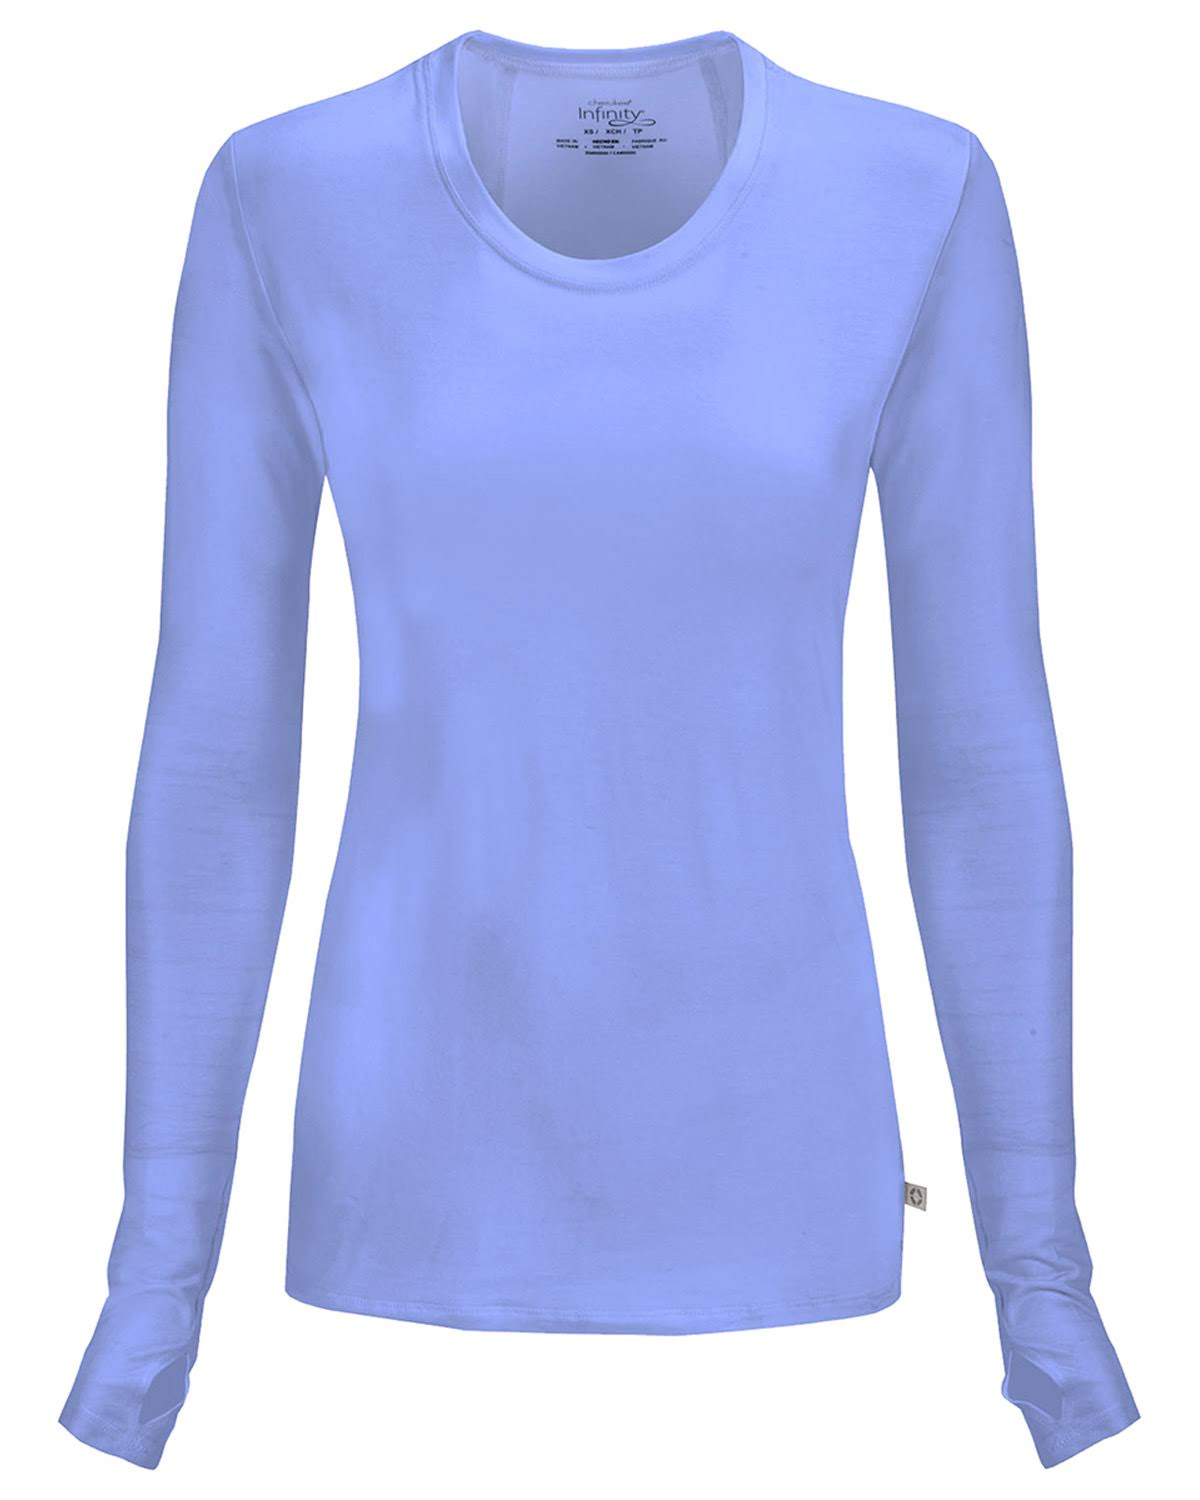 Cherokee Women's Infinity Long Sleeve Scrub Knit Tee - Ciel, Medium